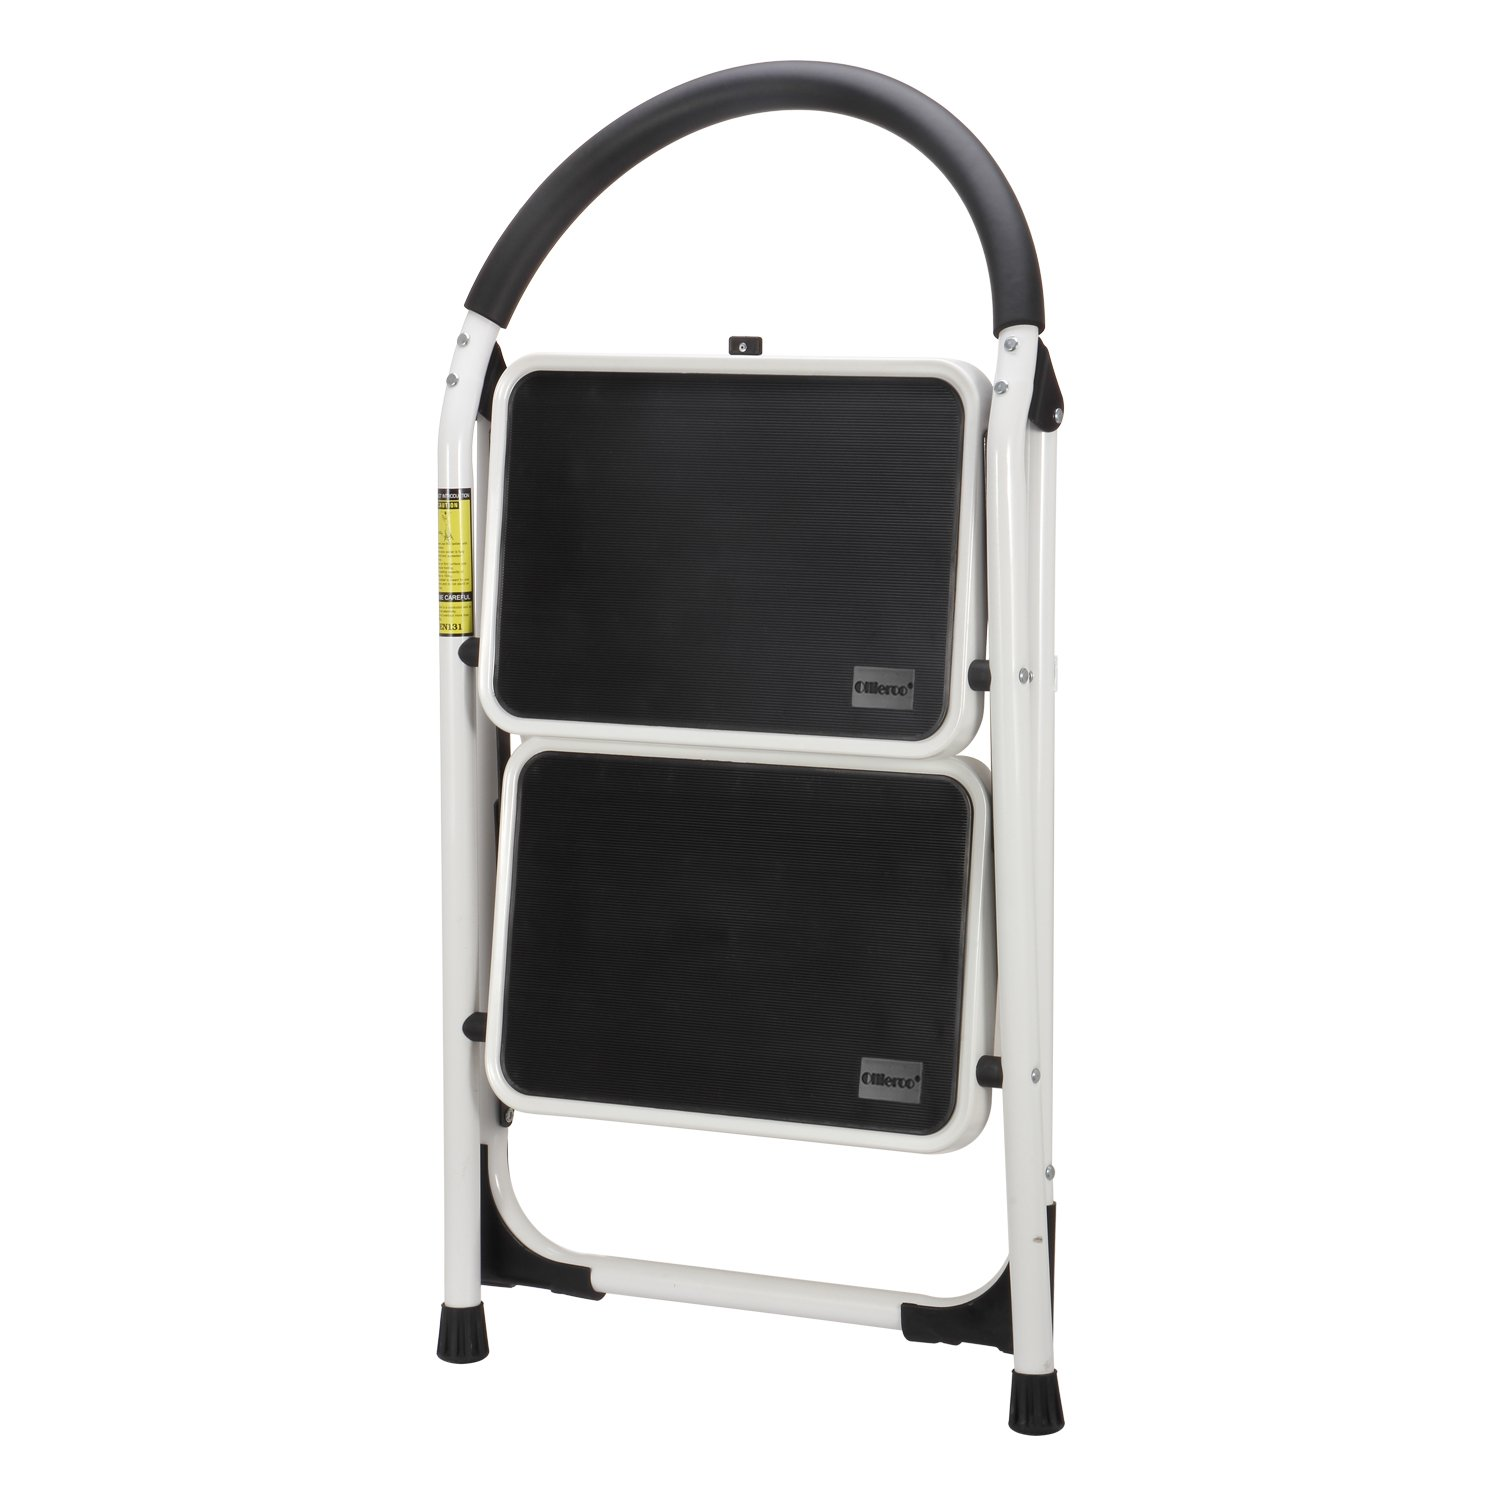 Ollieroo Step Stool EN131 Steel Folding 2 Step Ladder with Comfy Grip Handle Anti-slip Step Mon-marring Feet 330-pound Capacity White by Ollieroo (Image #3)